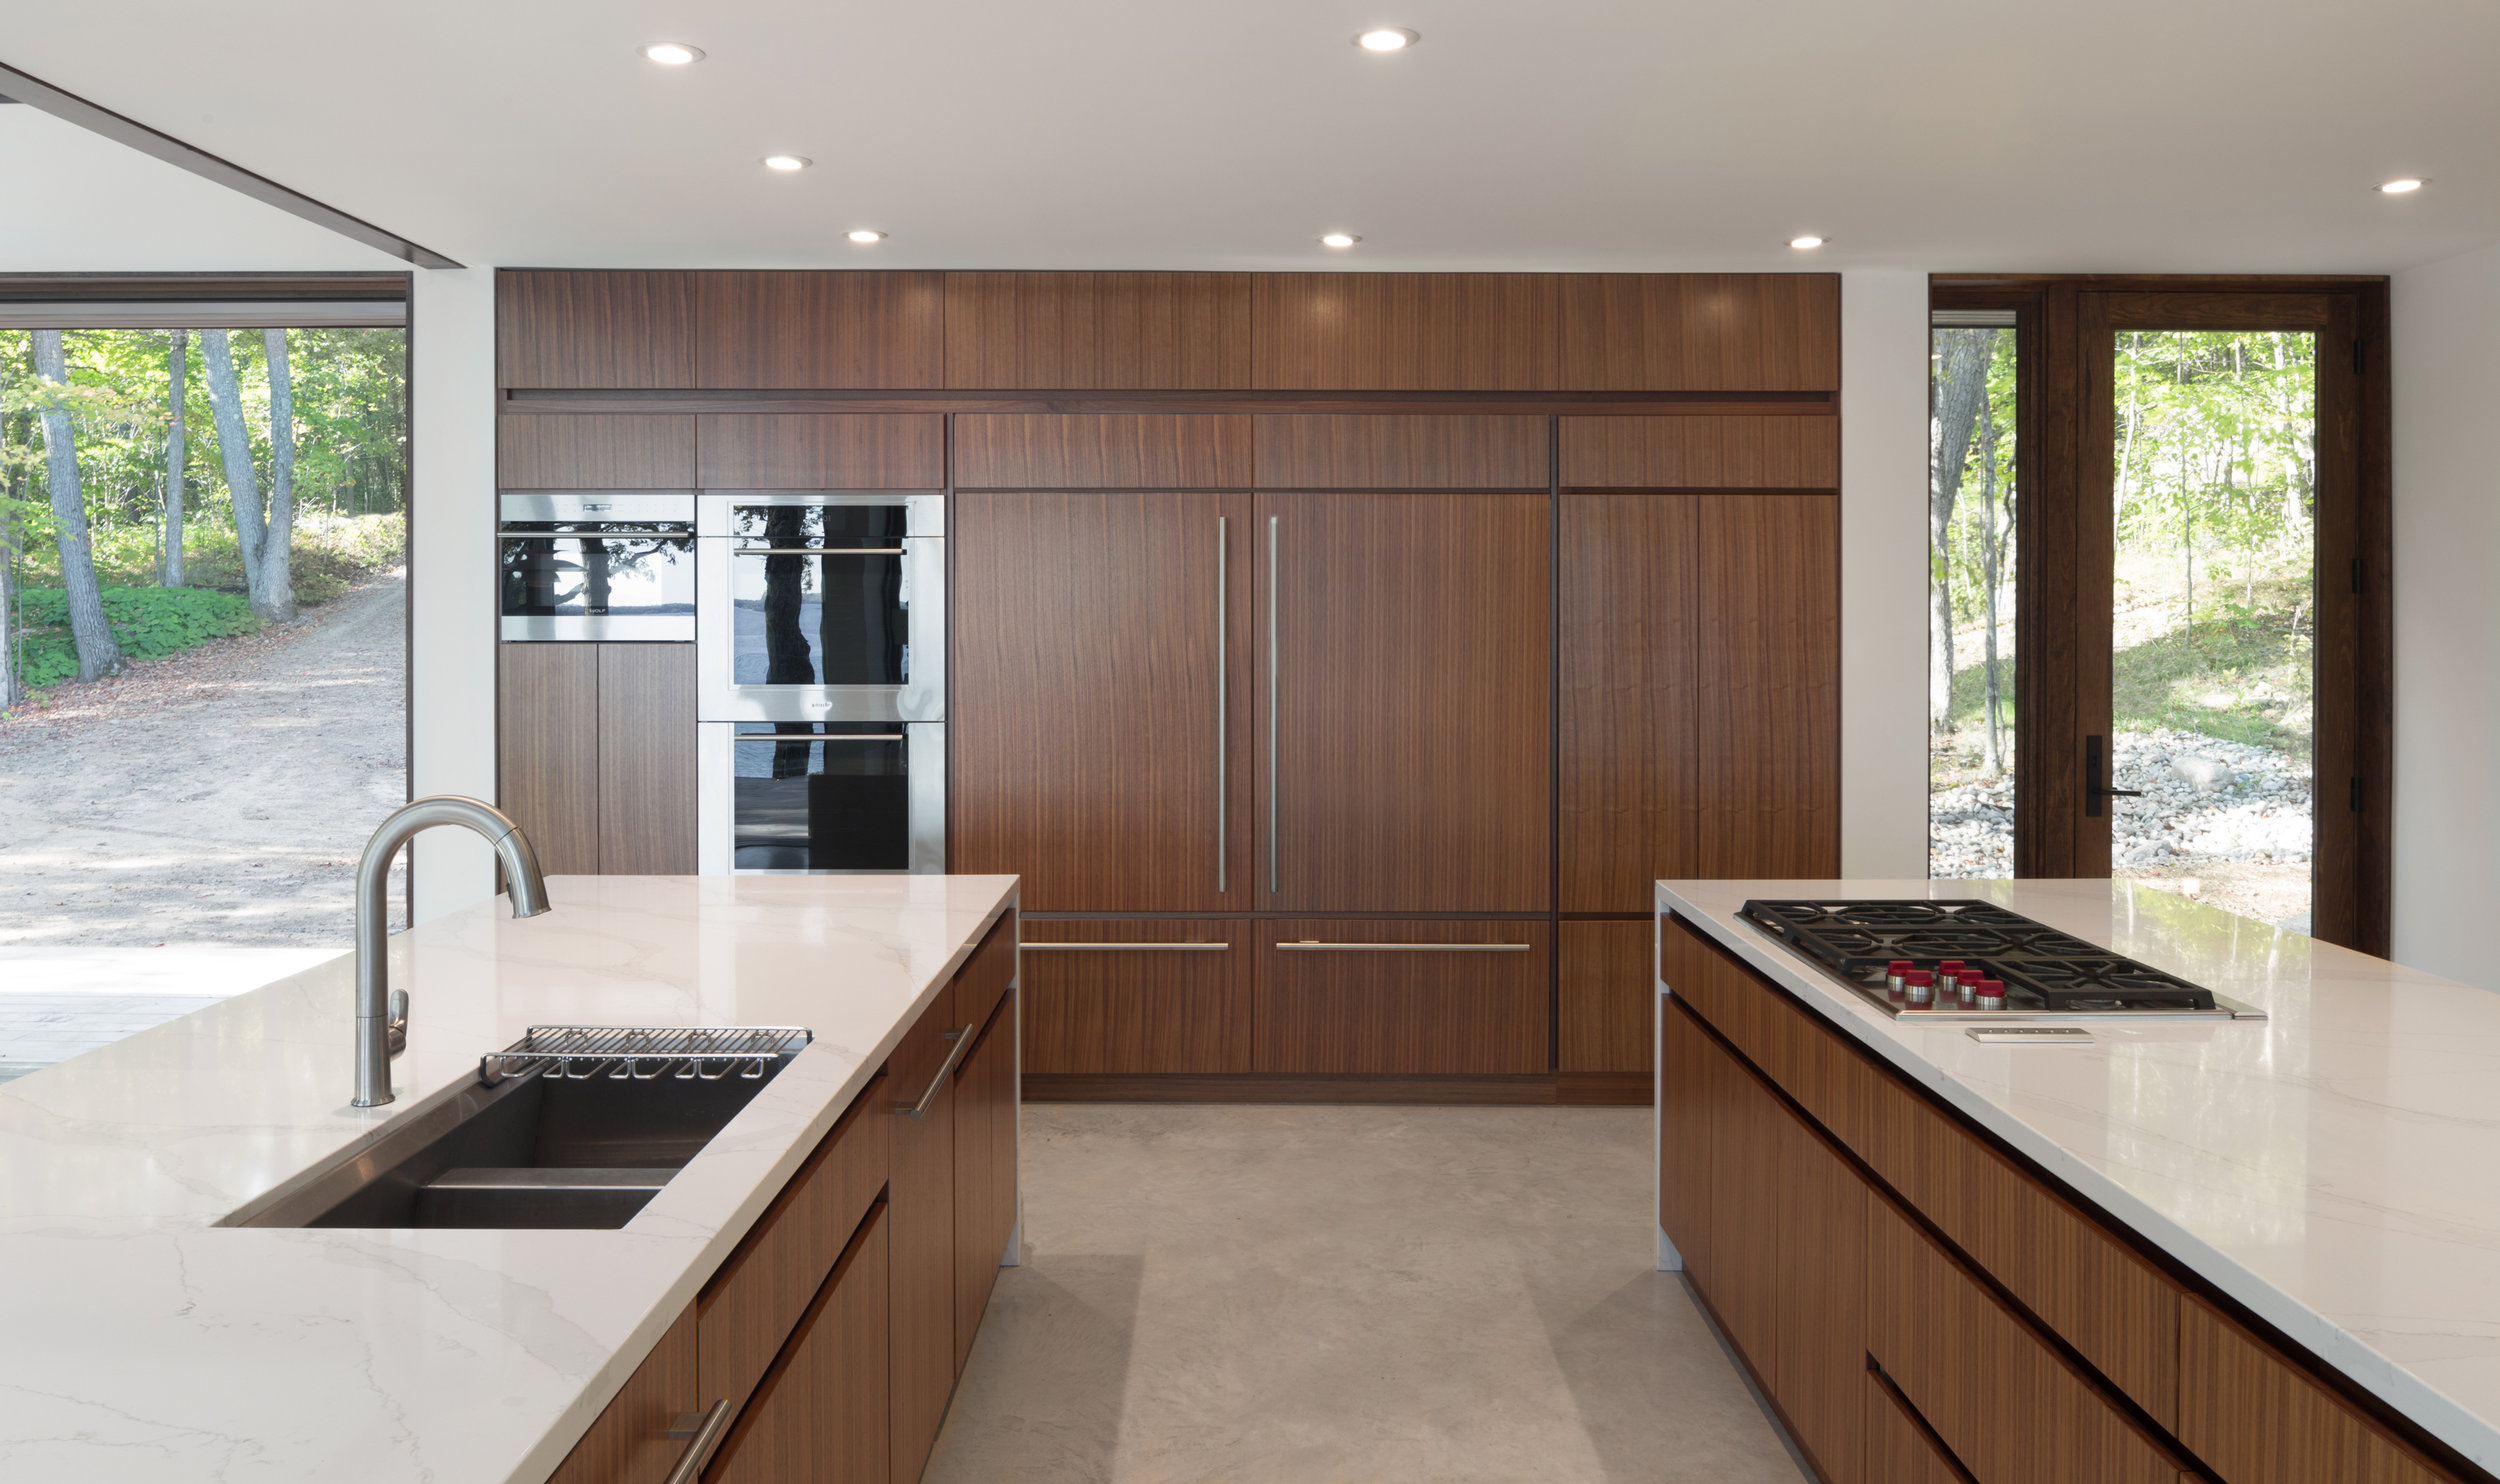 turkel_design_modern_prefab_home_kitchen_cabinetry_storage_wall.jpg